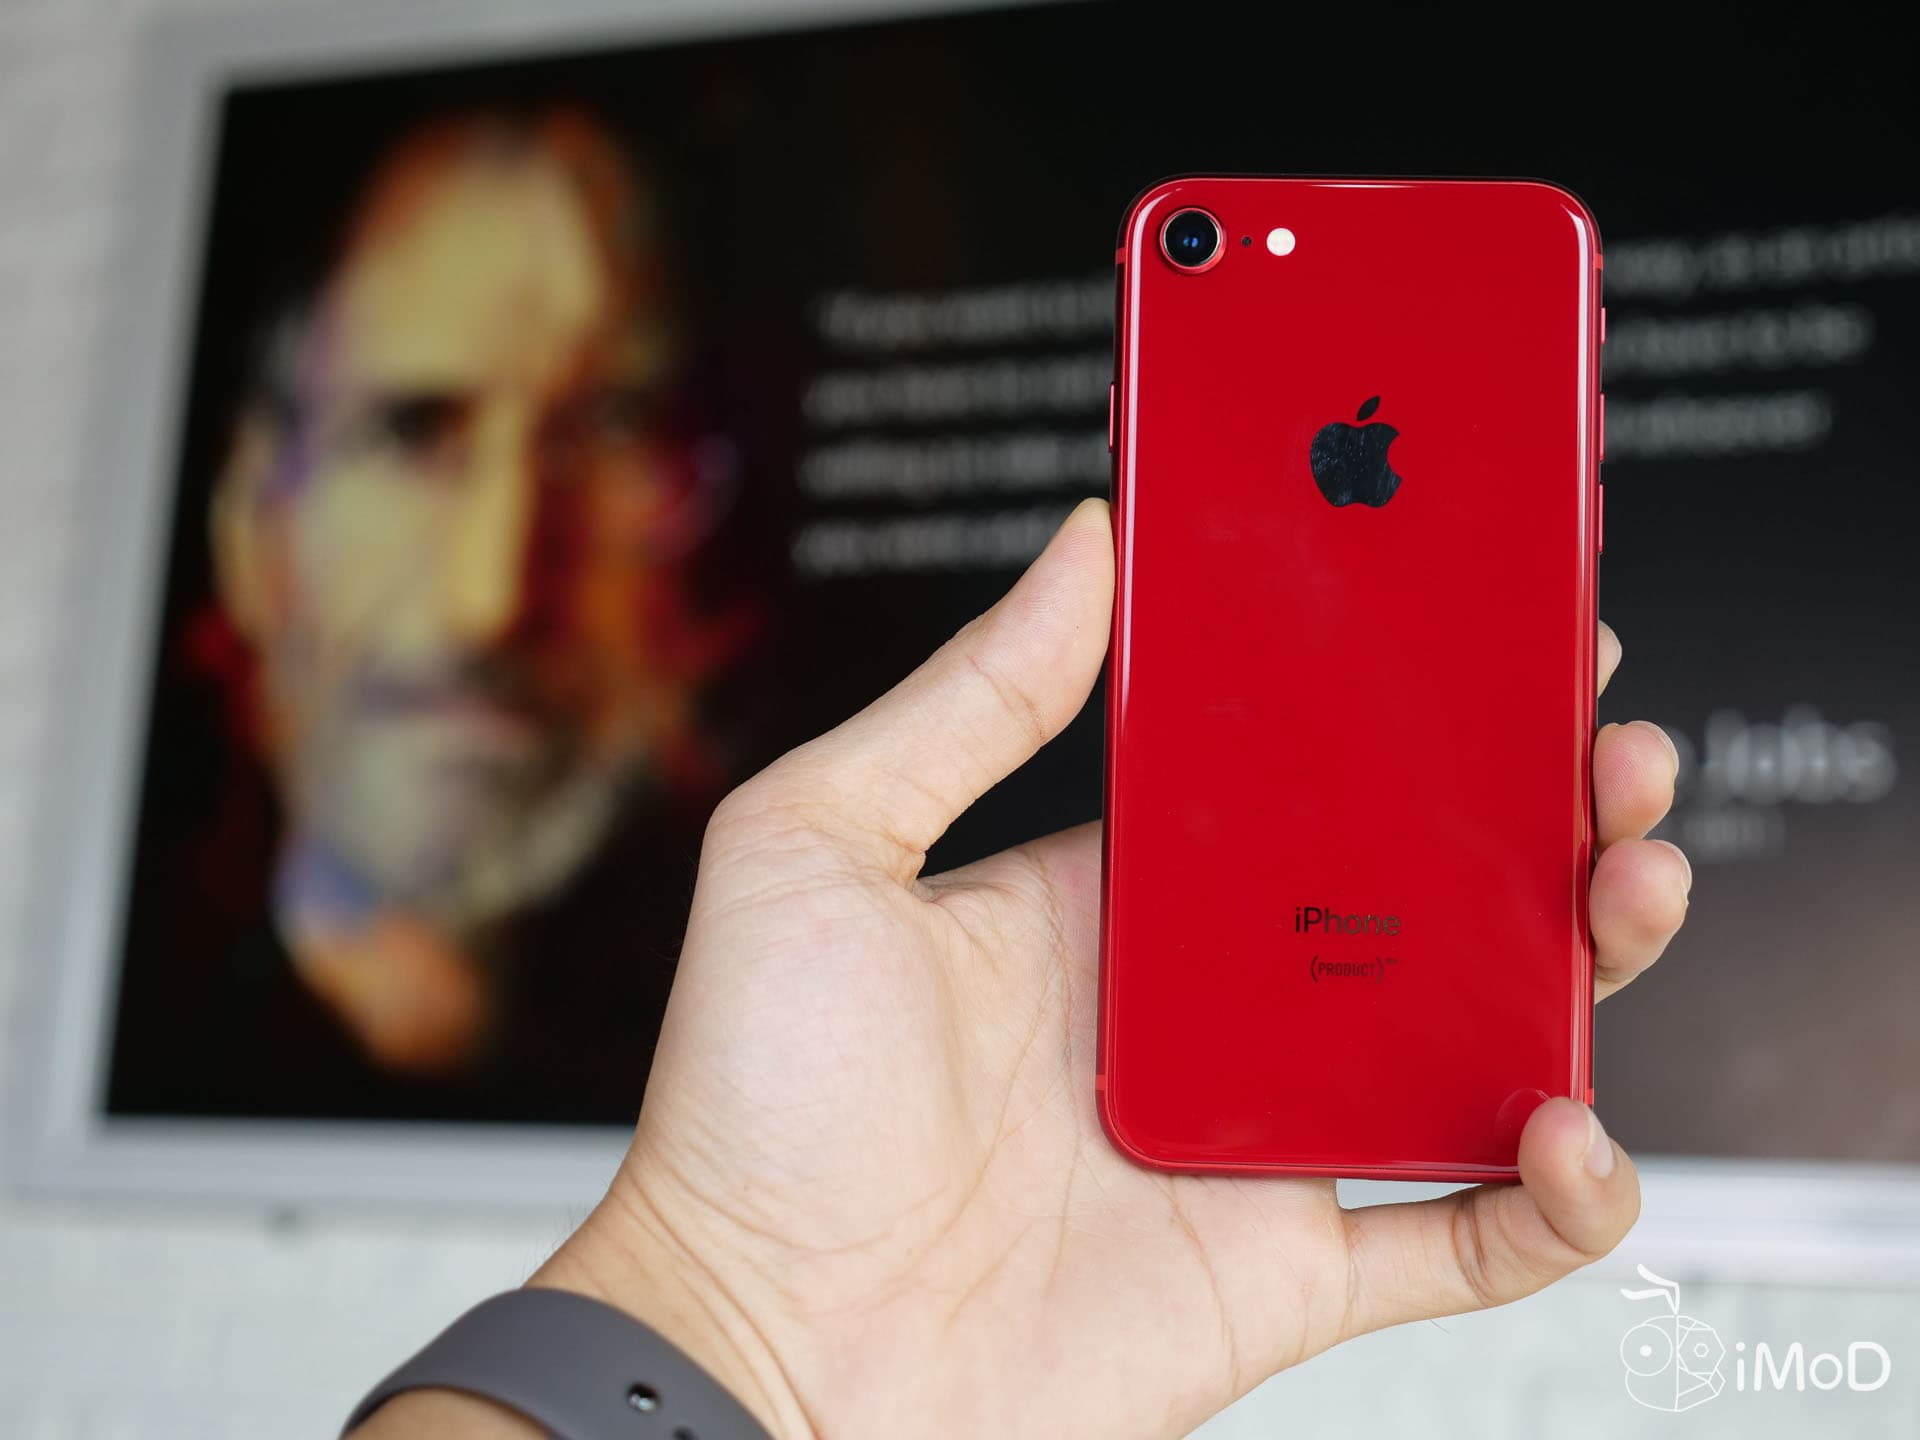 Iphone 8 Prouct Red Unbox 105